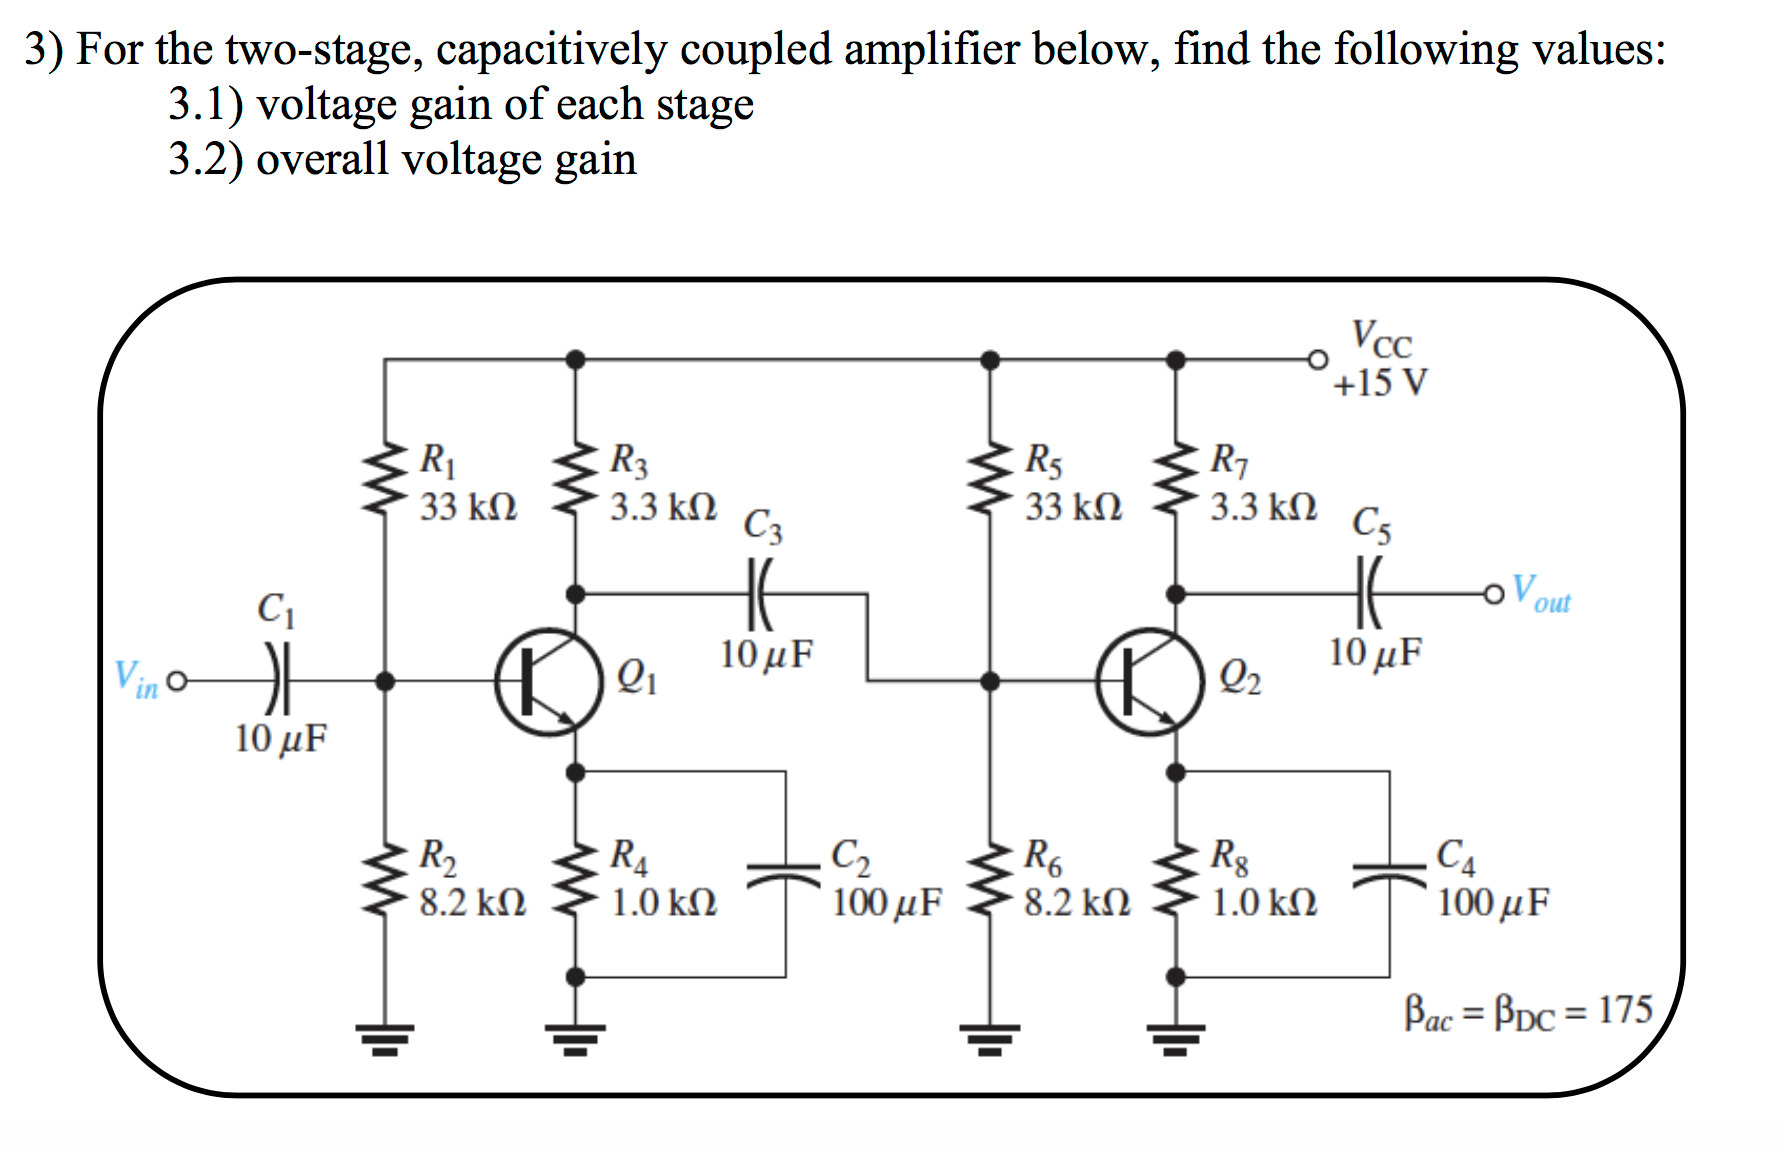 Two Stage Rc Coupled Amplifier Circuit Diagram Wiring And Jfet With Ac Coupling Tradeoficcom For The Capacitively